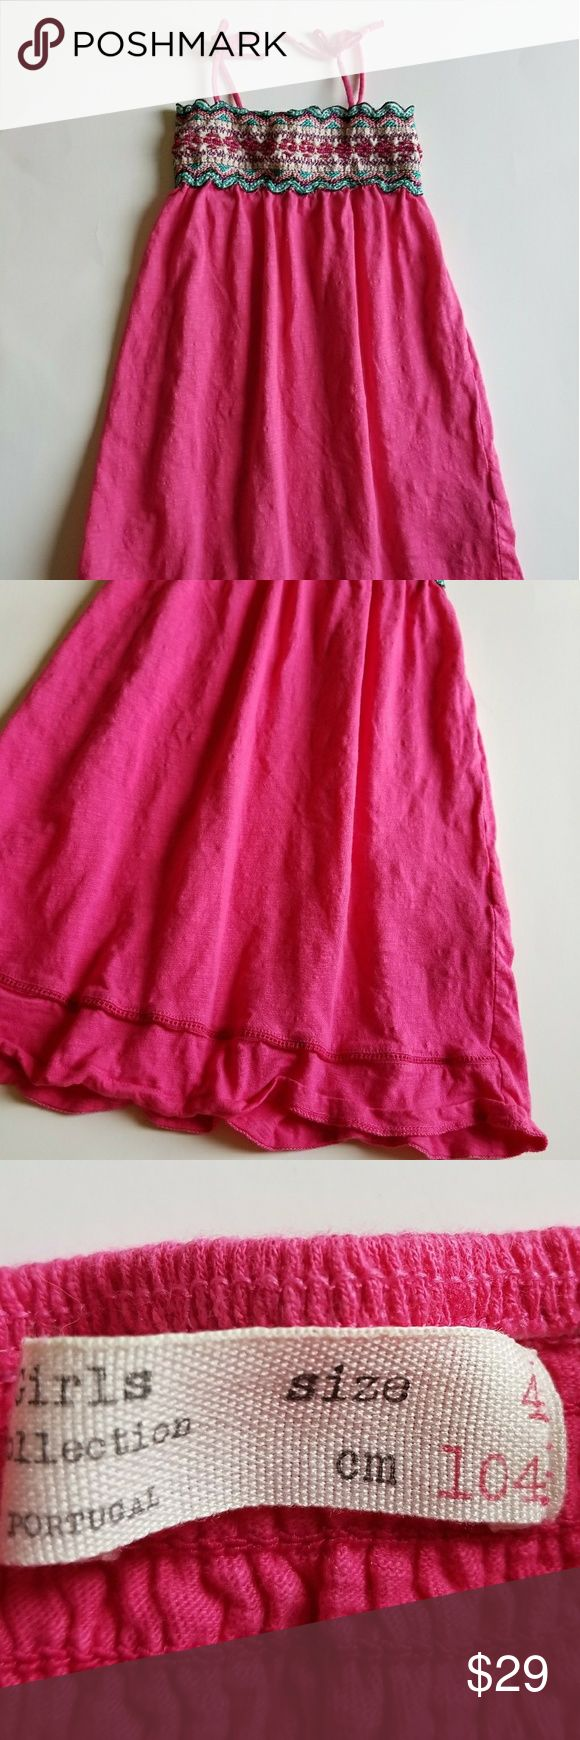 """ZARA Girls size 4 Pink Sundress DressSMOCKED ZARA Girls size 4 Pink Sundress Dress SMOCKED Beaded Embroidered Sleeveless 23"""" long Excellent clean condition. No flaws Non smoking home Zara Dresses Casual"""